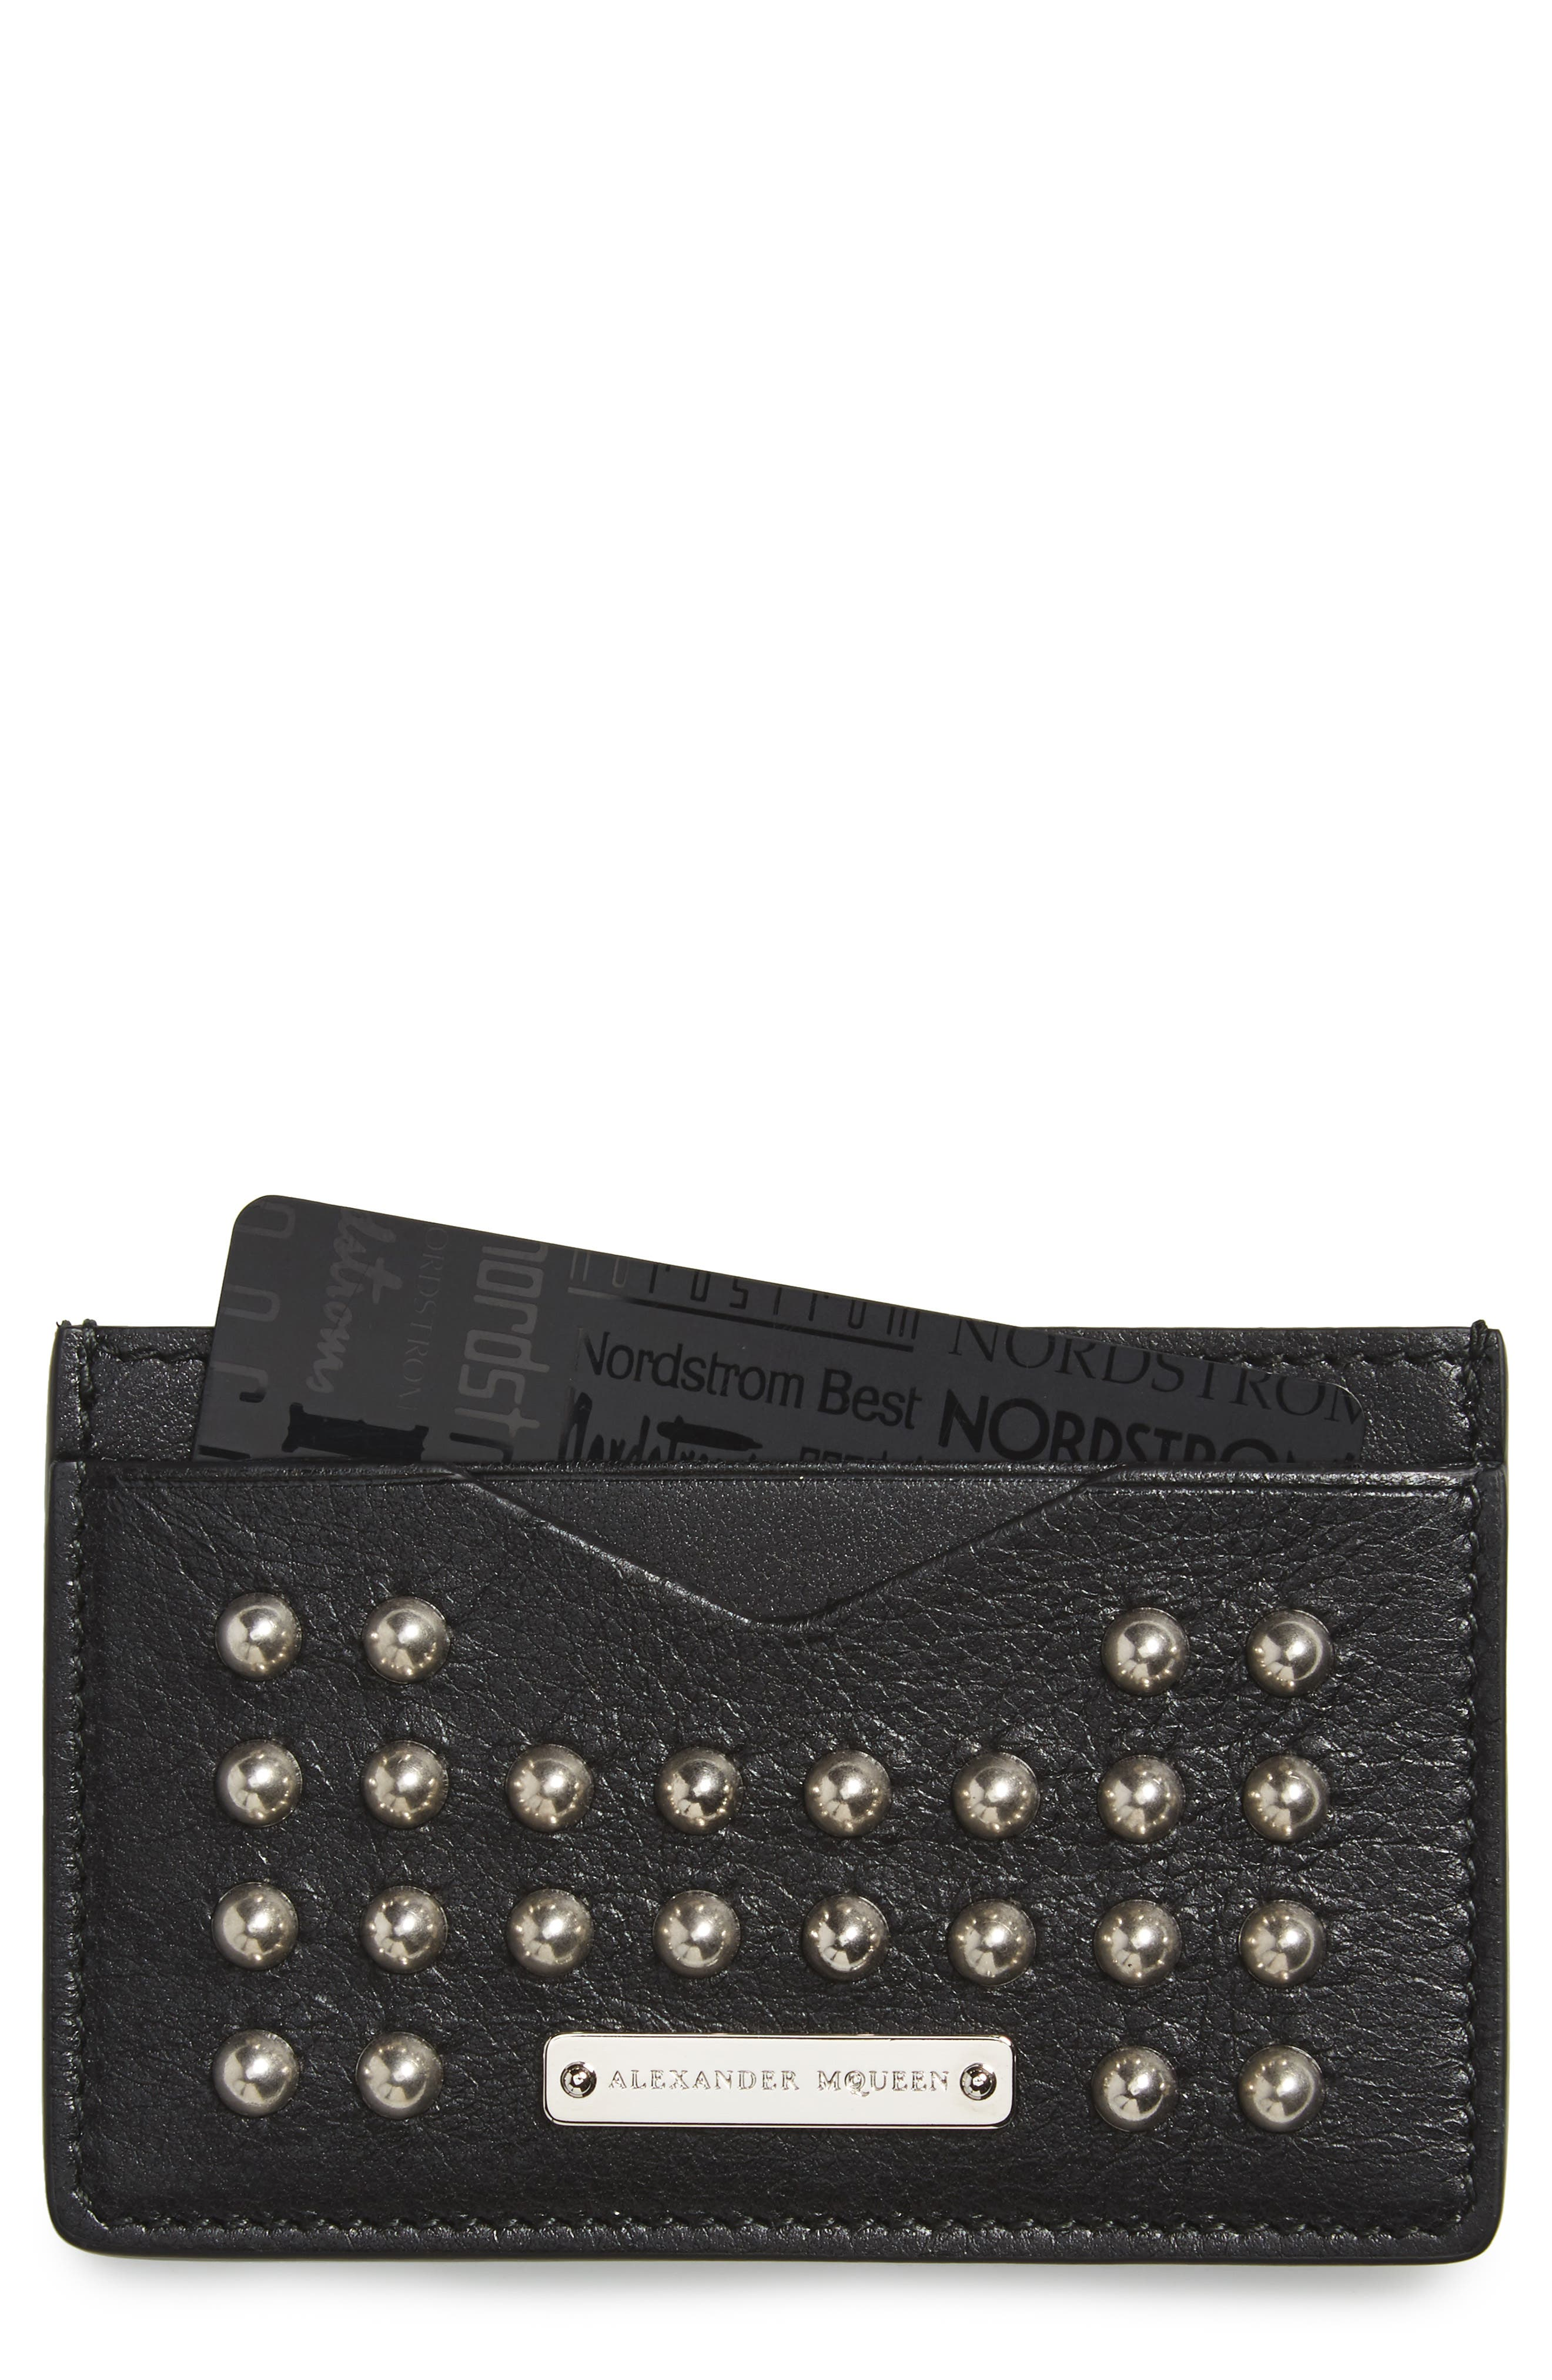 Main Image - Alexander McQueen Studded Leather Card Case